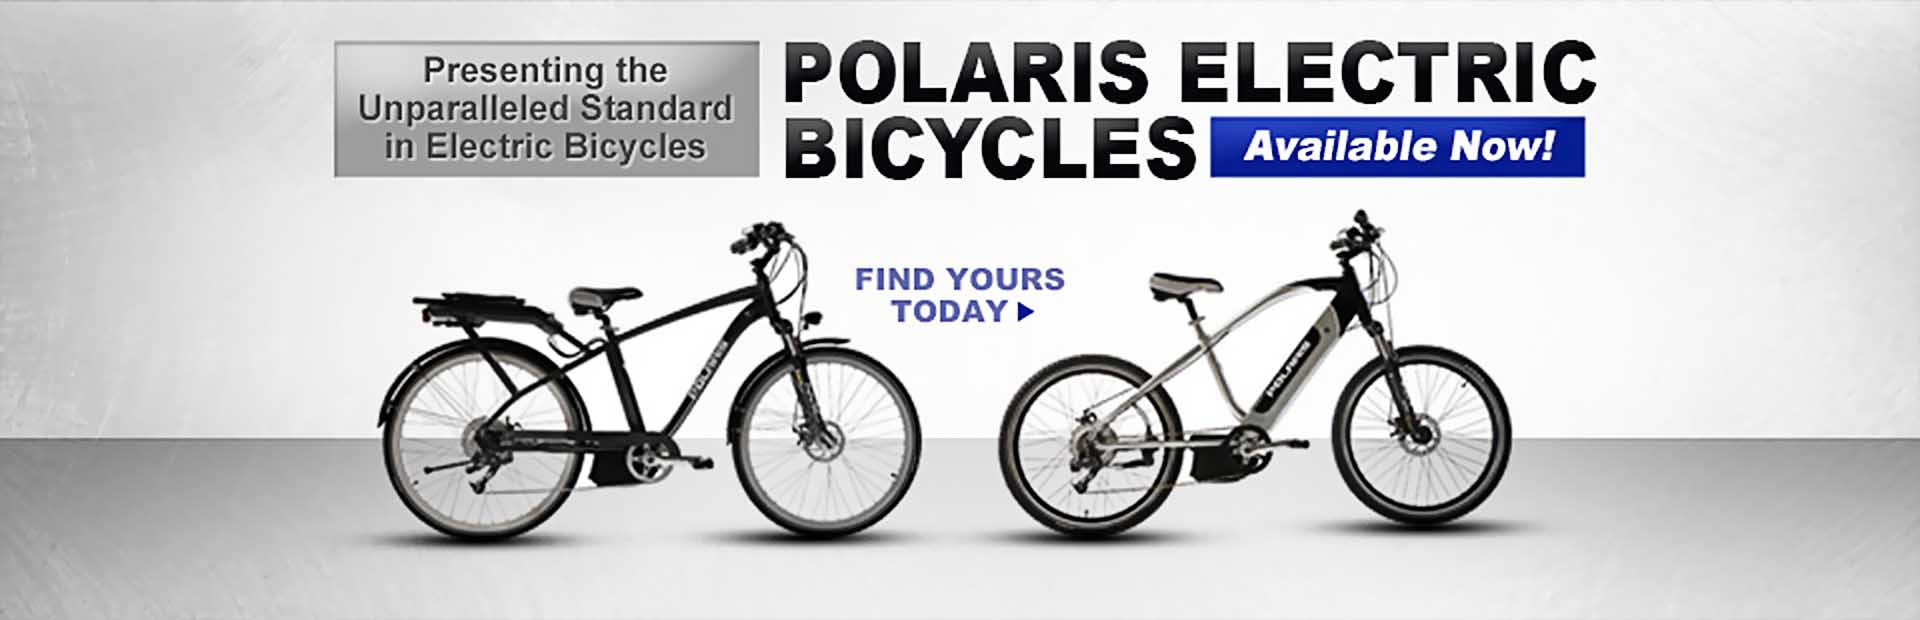 Polaris electric bicycles are available now!